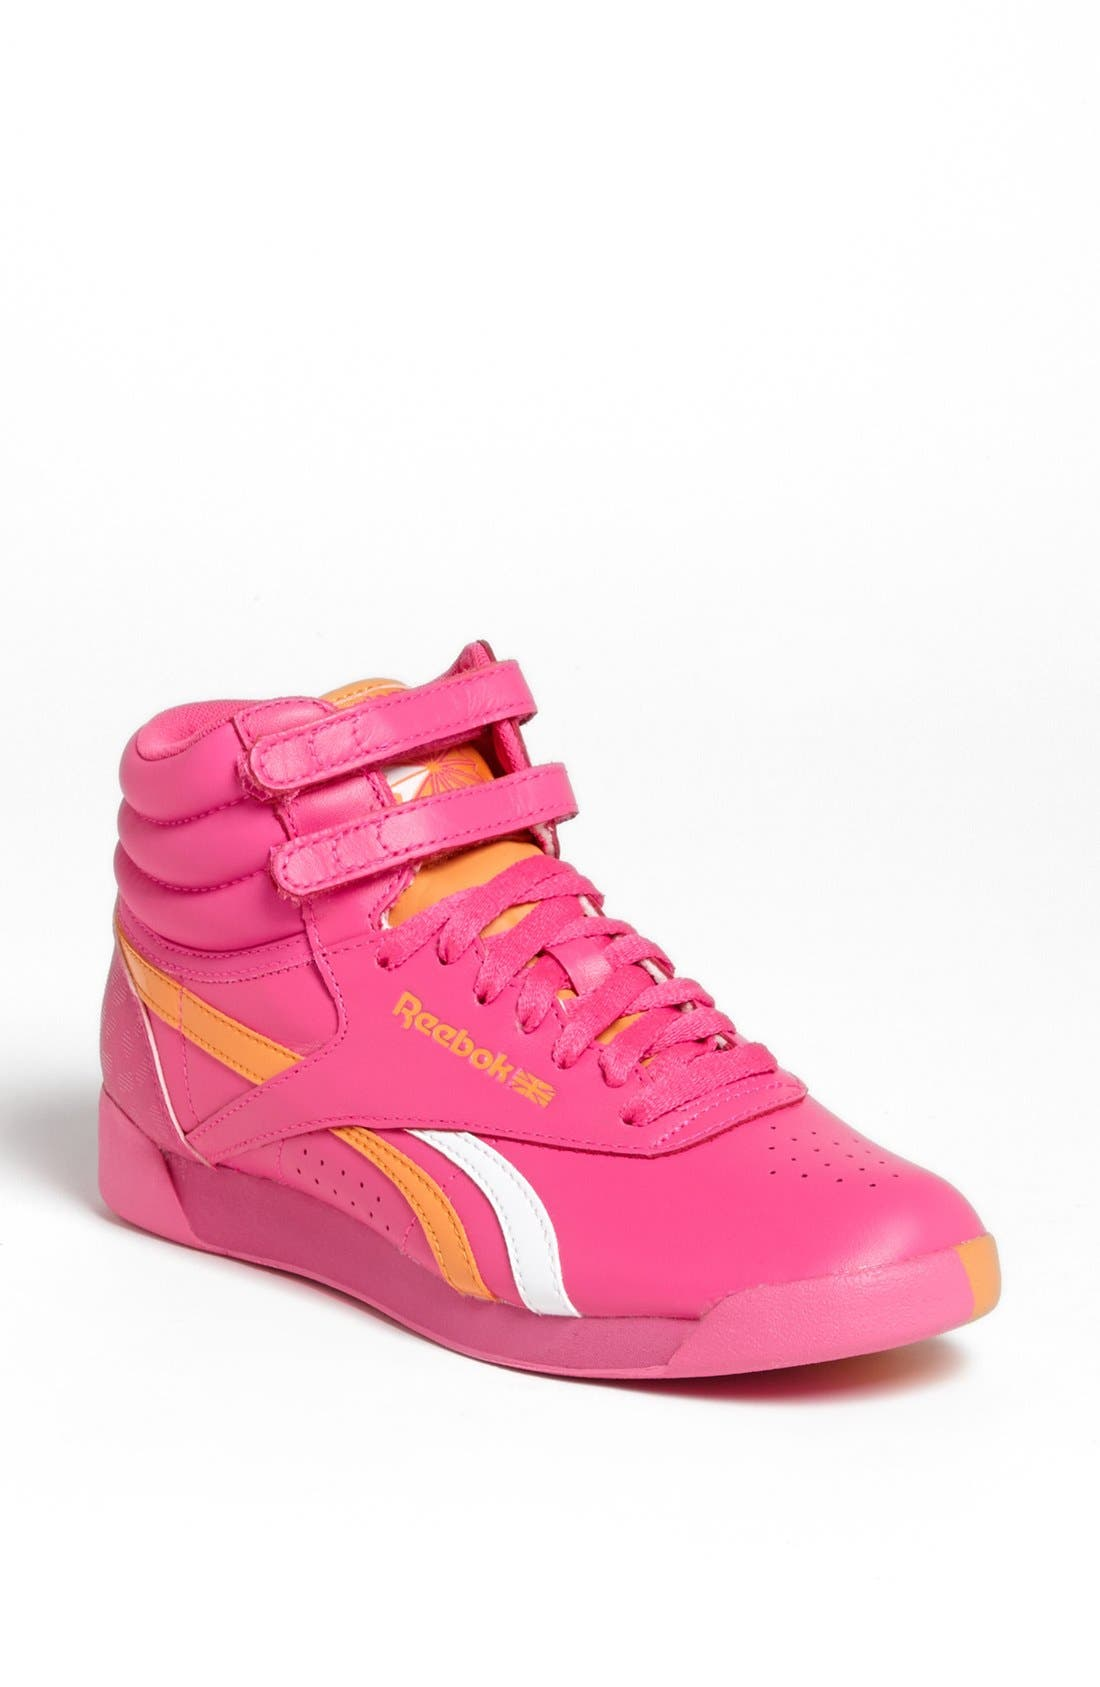 Main Image - Reebok 'F/S Hi Splitz' High Top Sneaker (Women)